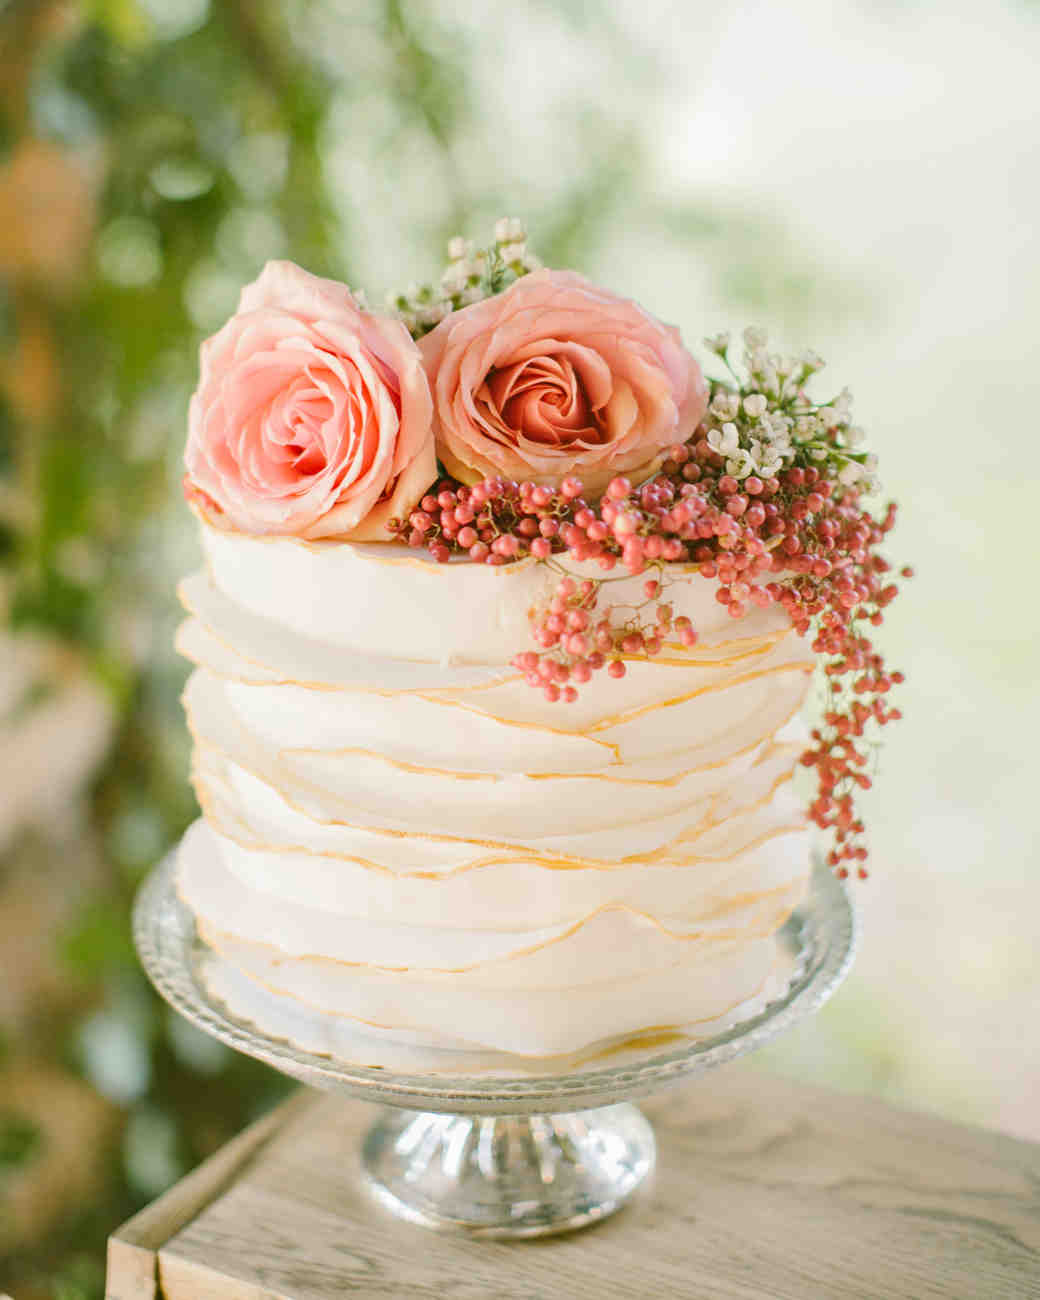 Single-Tiered Deckle-Edge Cake Topped with Flowers